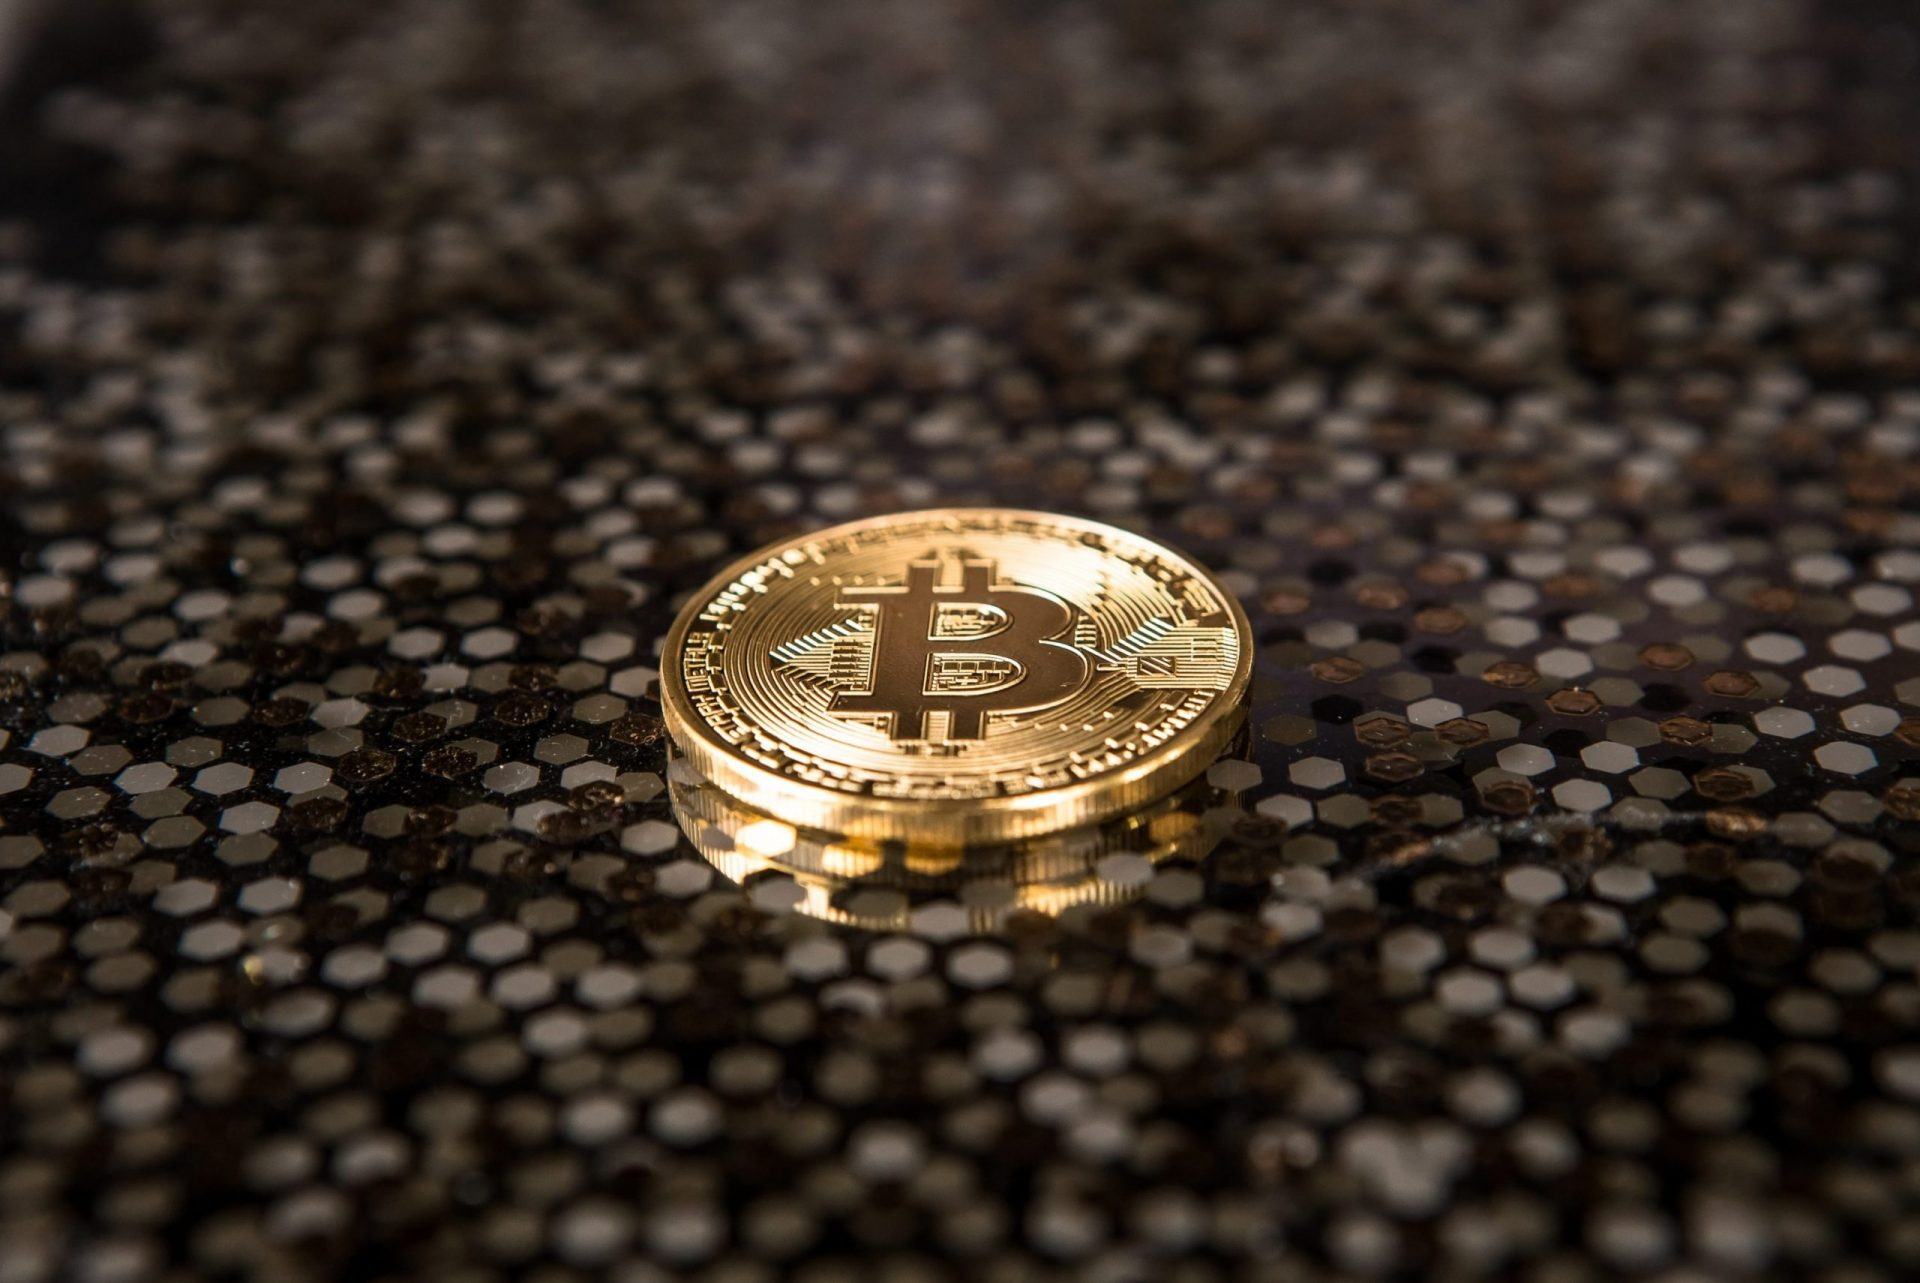 Bitcoin is Scarce: Binance and Coinbase CEOs Talk 21M BTC Cap 24